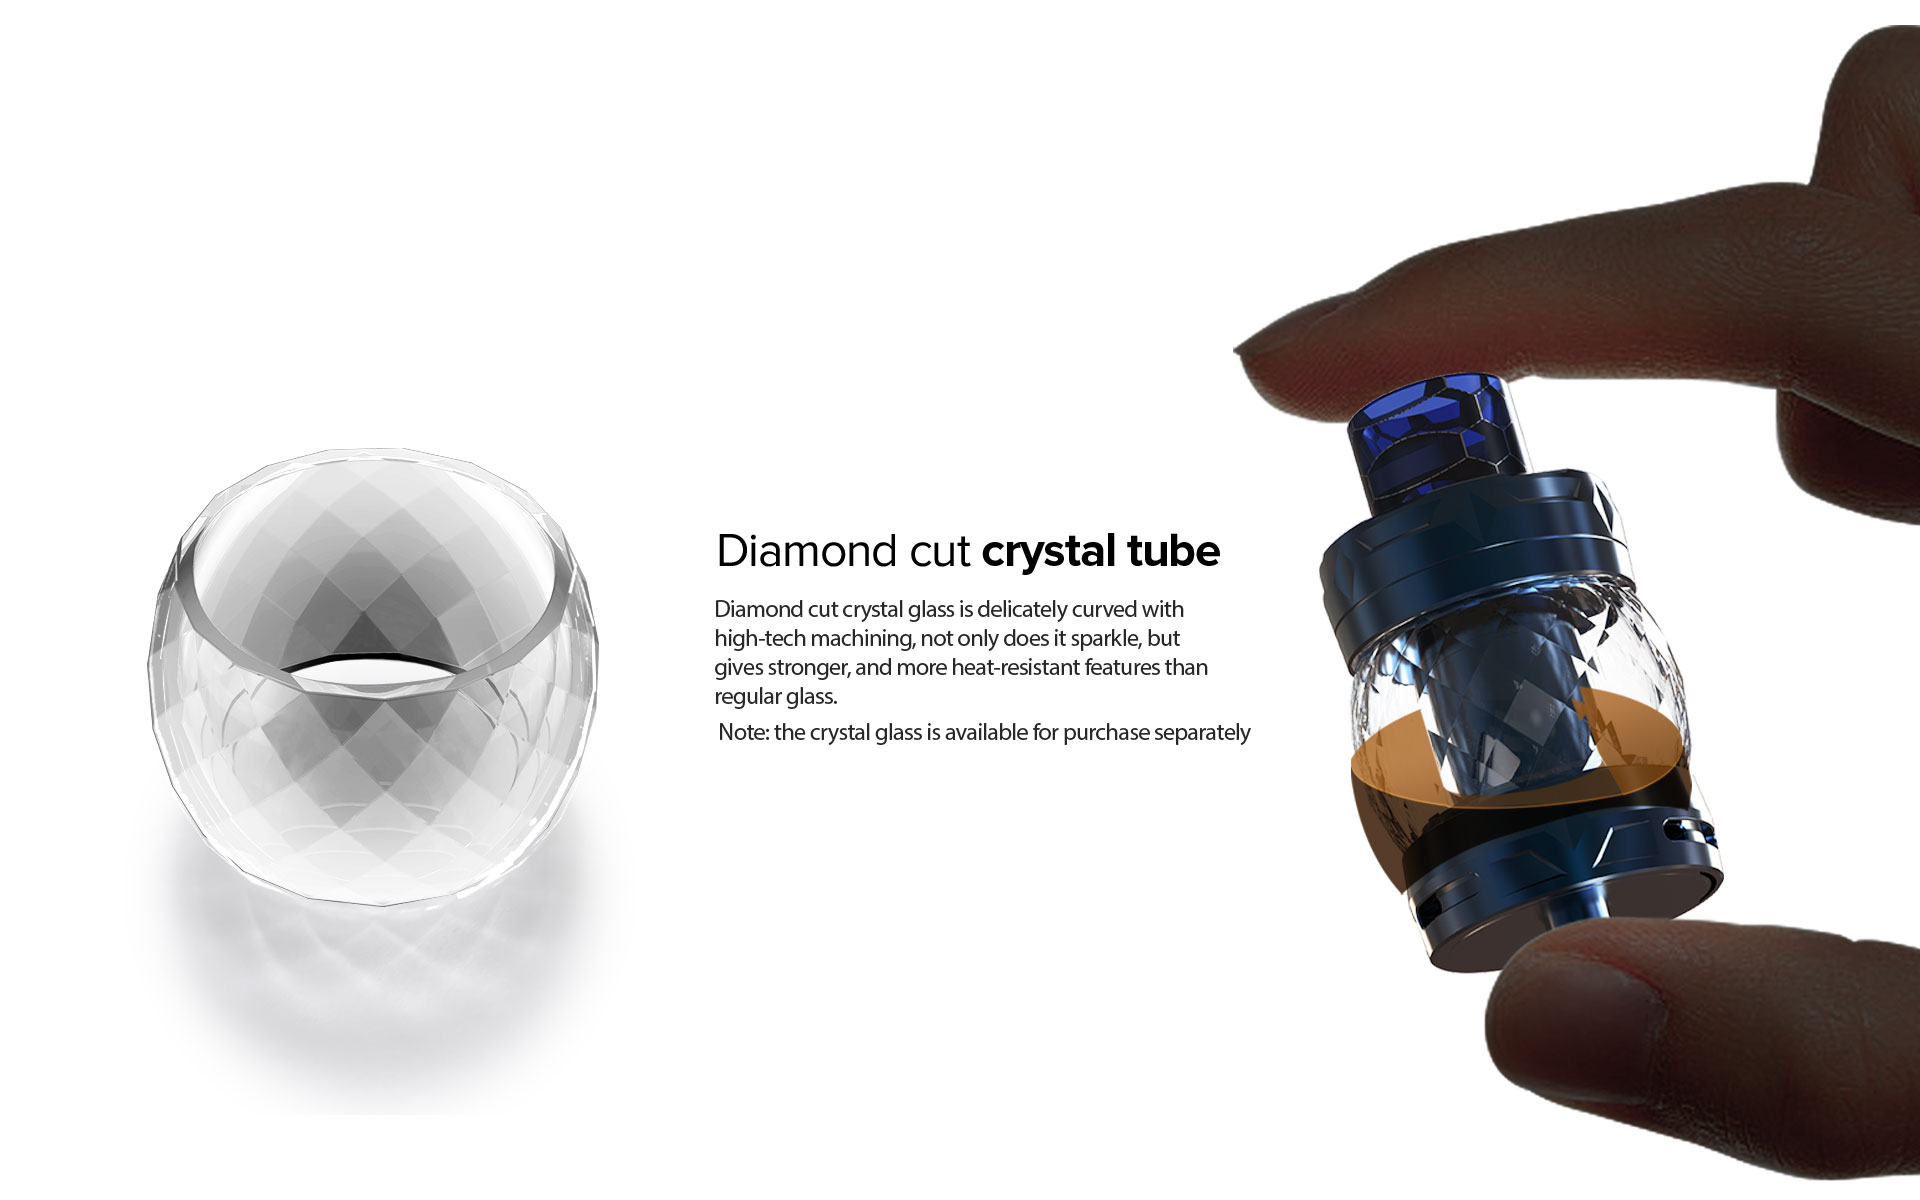 Clearomiseur Odan Diamond - 5ml - Aspire - Verre Crystal